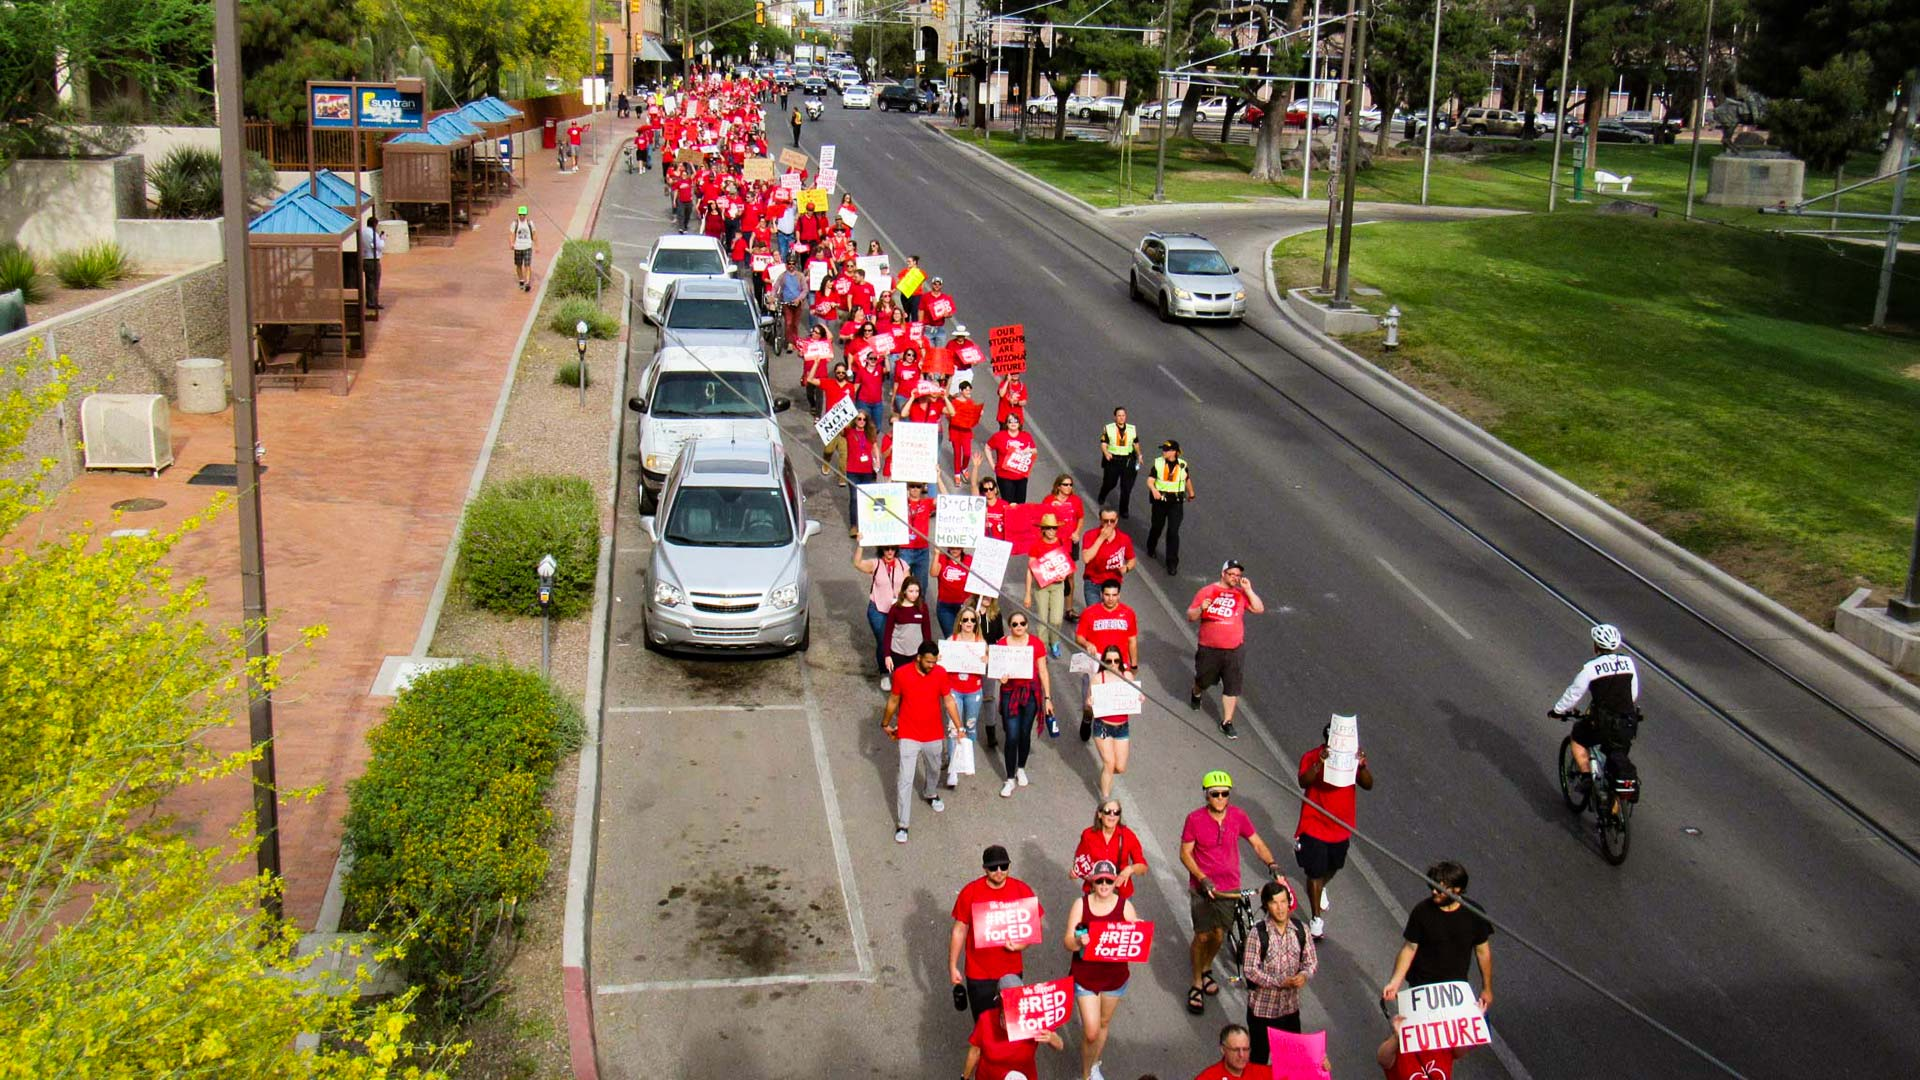 Educators march in downtown Tucson in 2018 calling for better teacher pay and education funding in Arizona. This year's Proposition 208  aims to make up for lagging education funding in the state by taxing the wealthy.